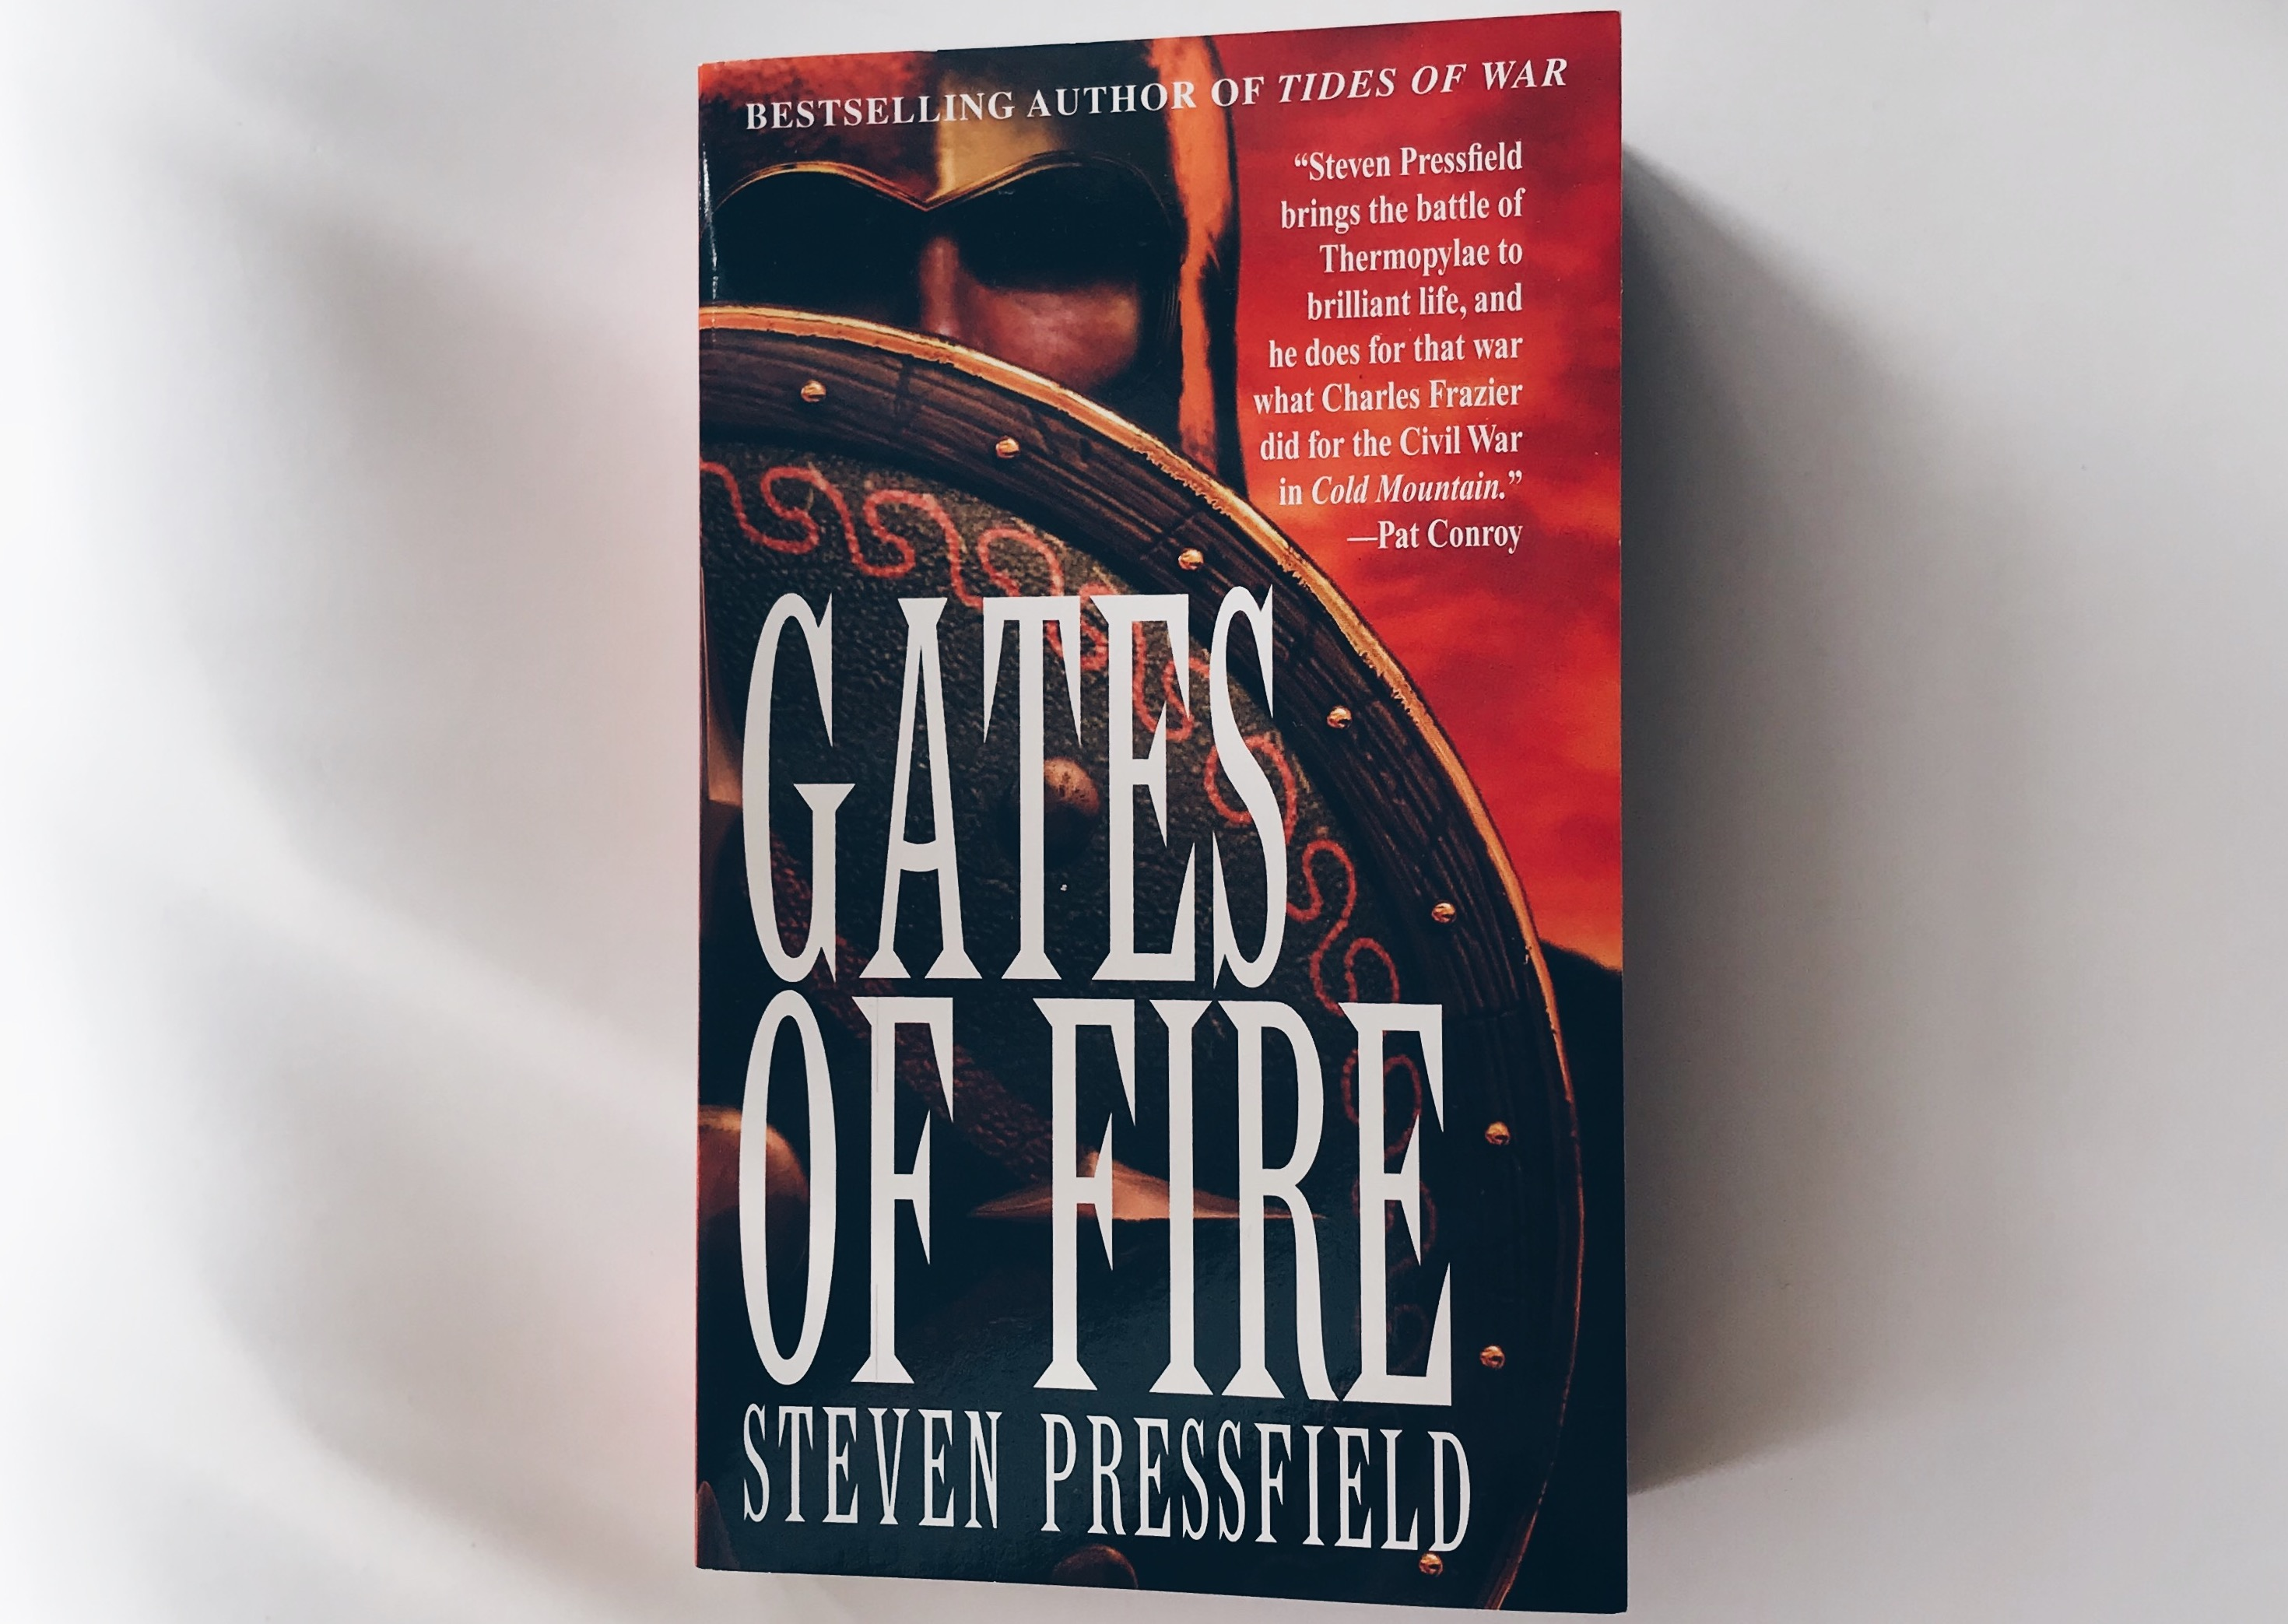 gates fire steven pressfield Steven pressfield's the gates of fire is set in the fifth century bc in greece the story revolves around the famous battle of thermopylae where three hundred spartans held off hundreds of thousands of persians, saving greece pressfield creates a fictional story around the battle where.